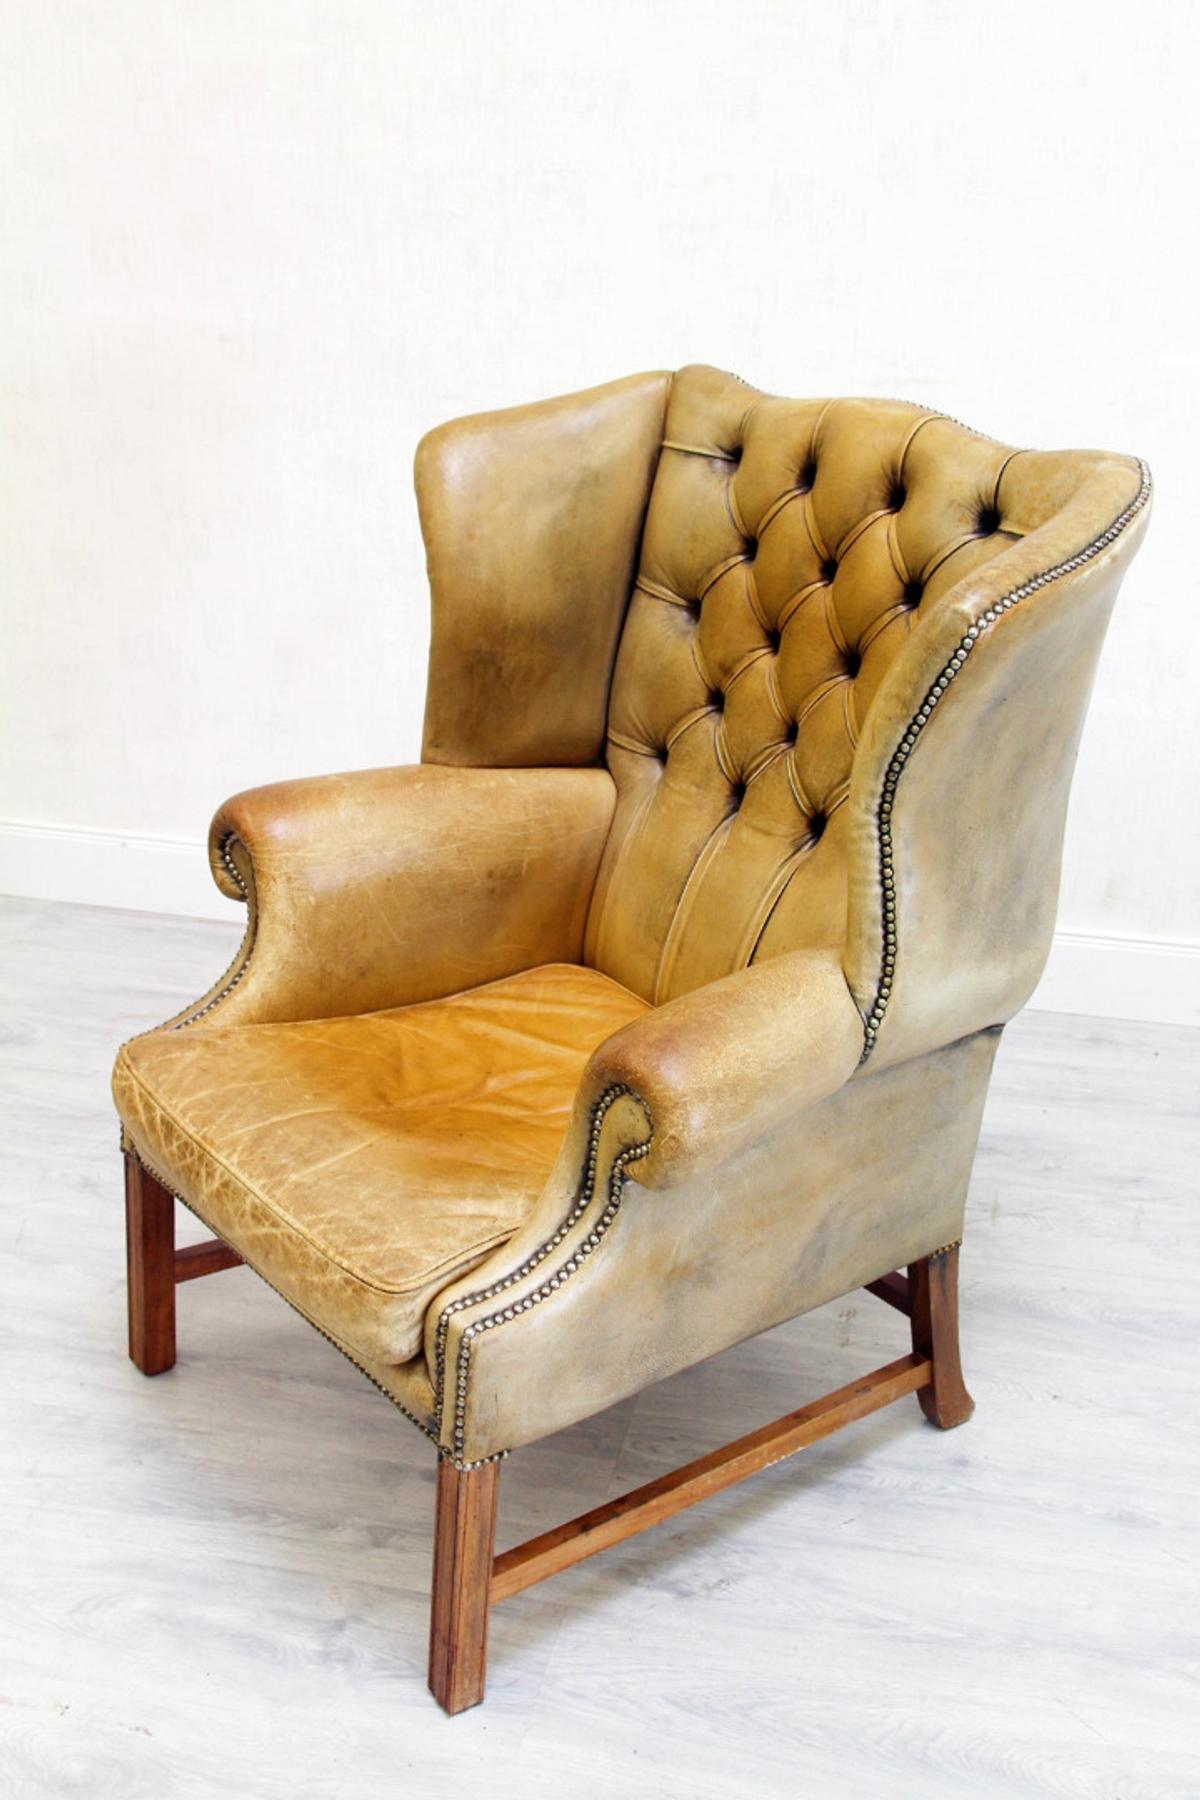 50 Jahre Sessel Chesterfield Fernsehsessel Sessel Ohrensessel In 32791 Lage For